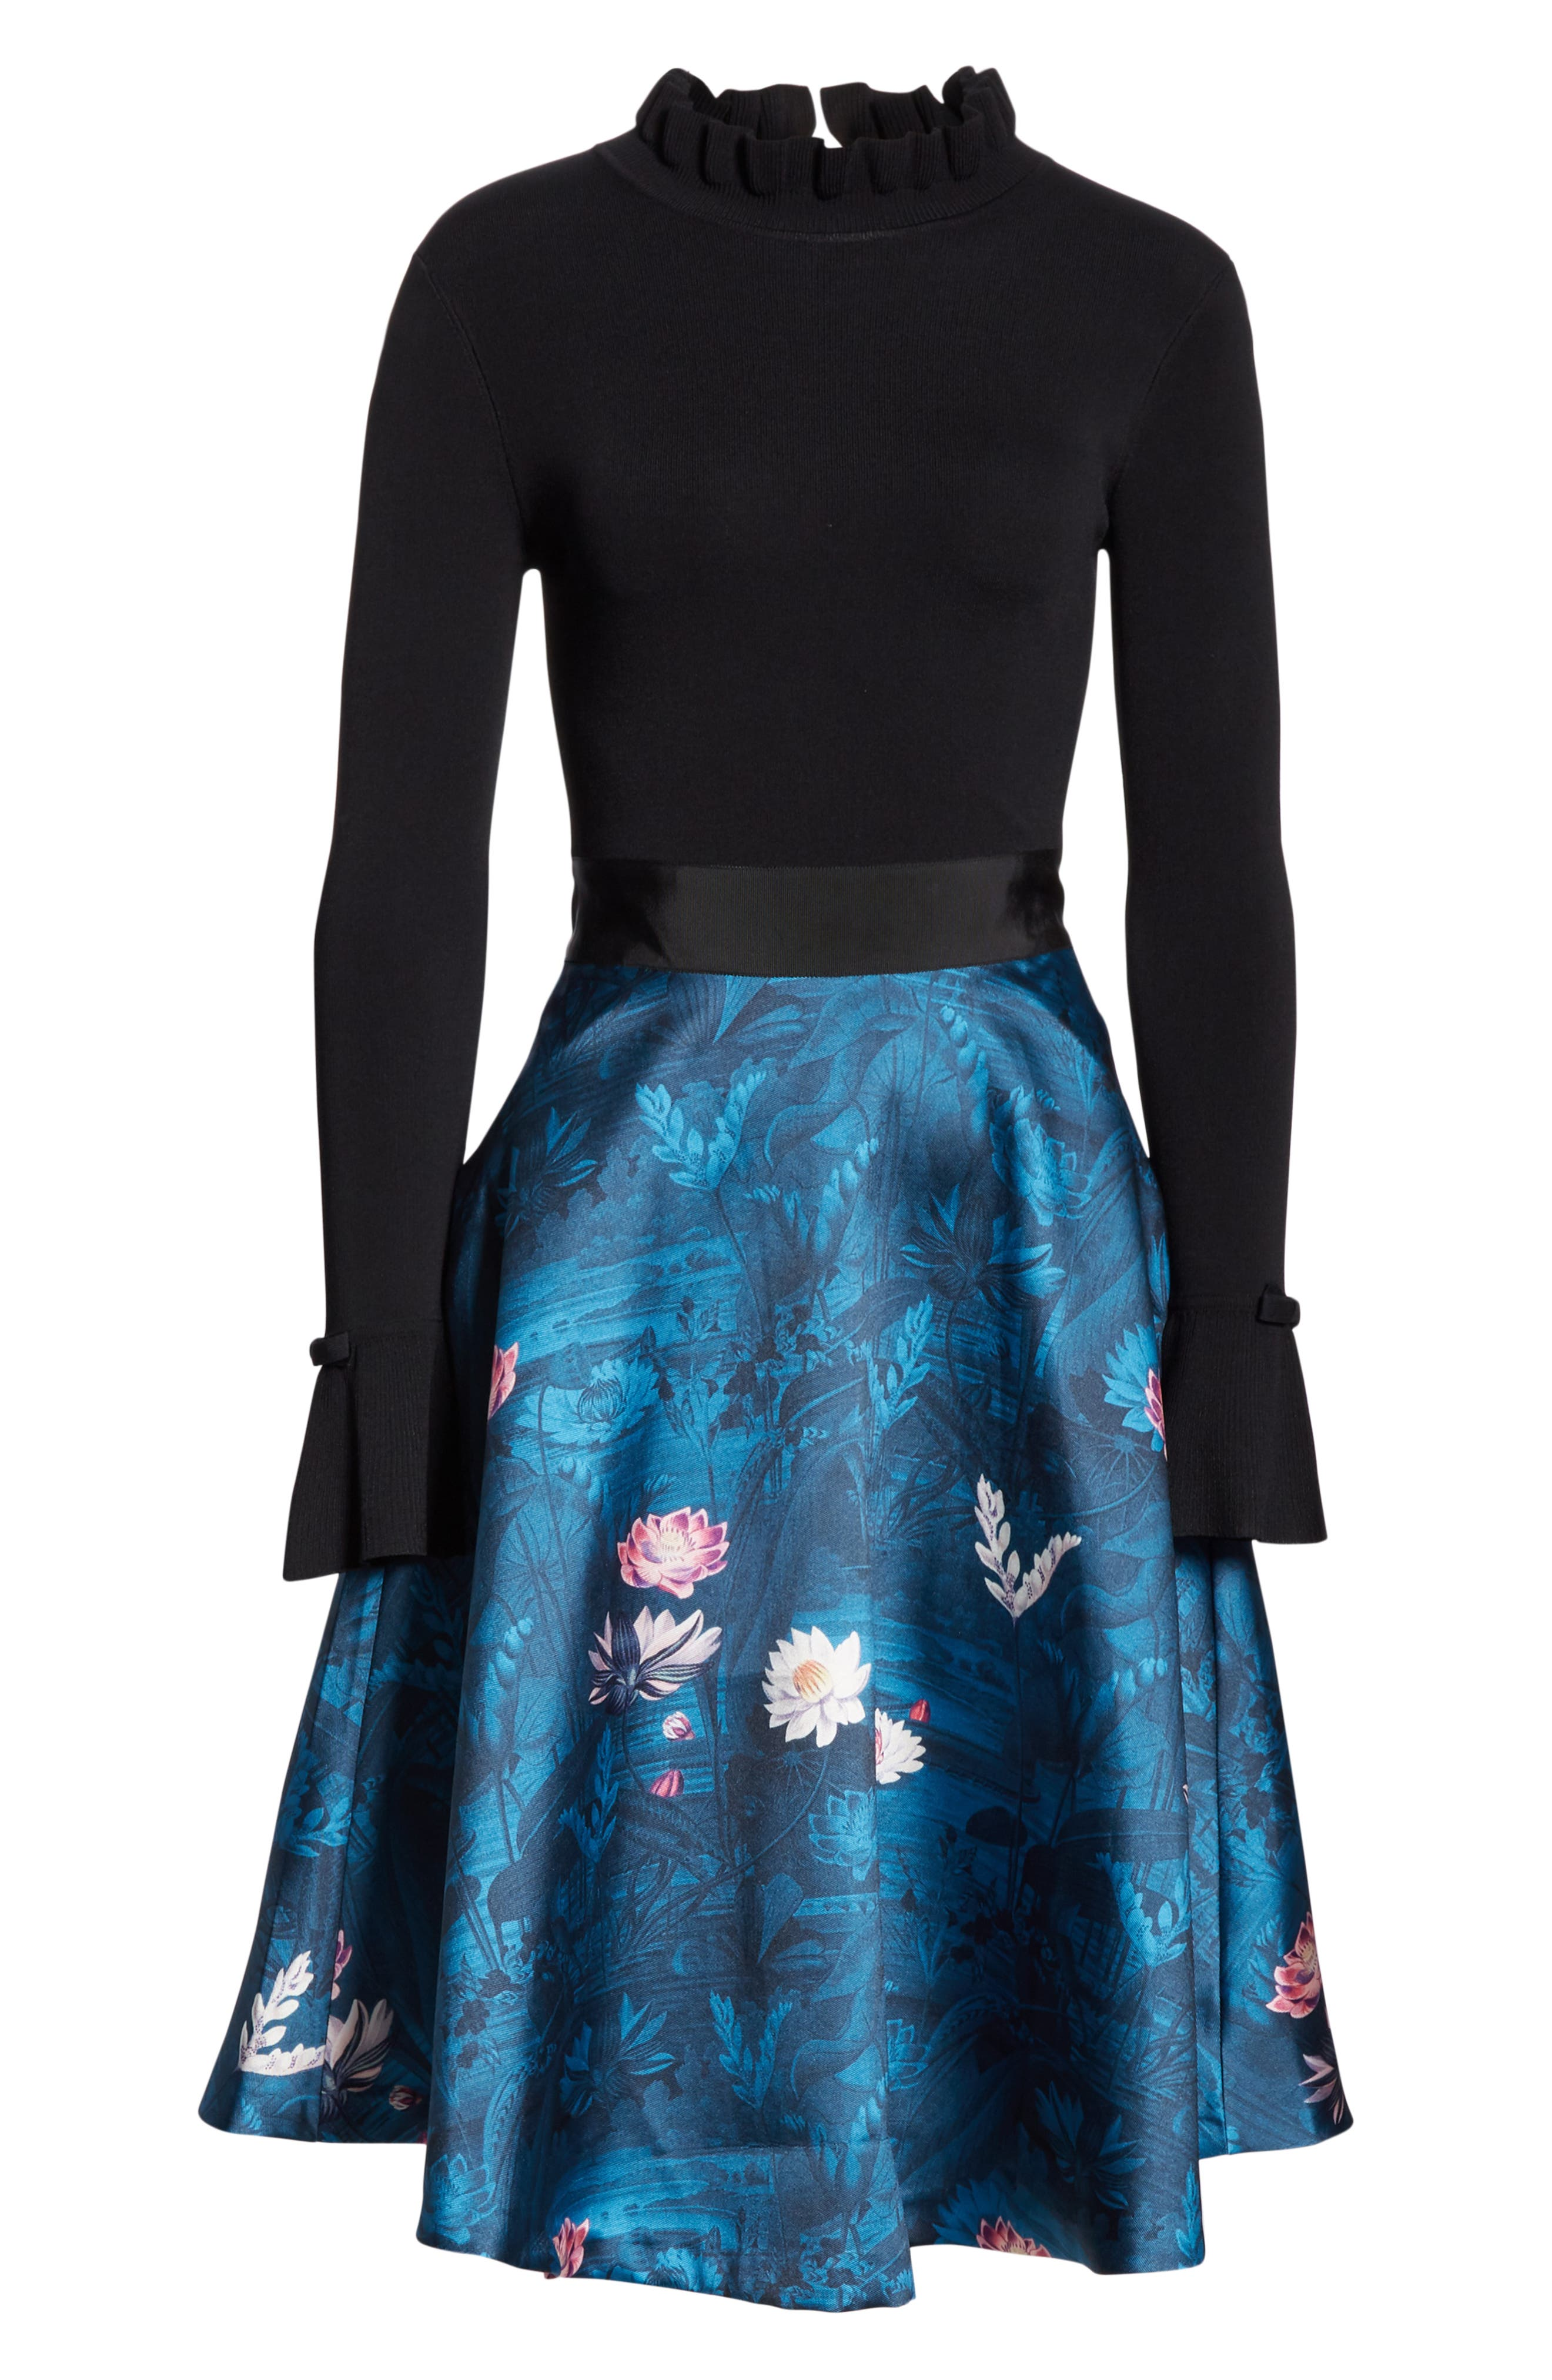 TED BAKER LONDON, Kalinaa Wonderland Fit & Flare Dress, Alternate thumbnail 7, color, 001